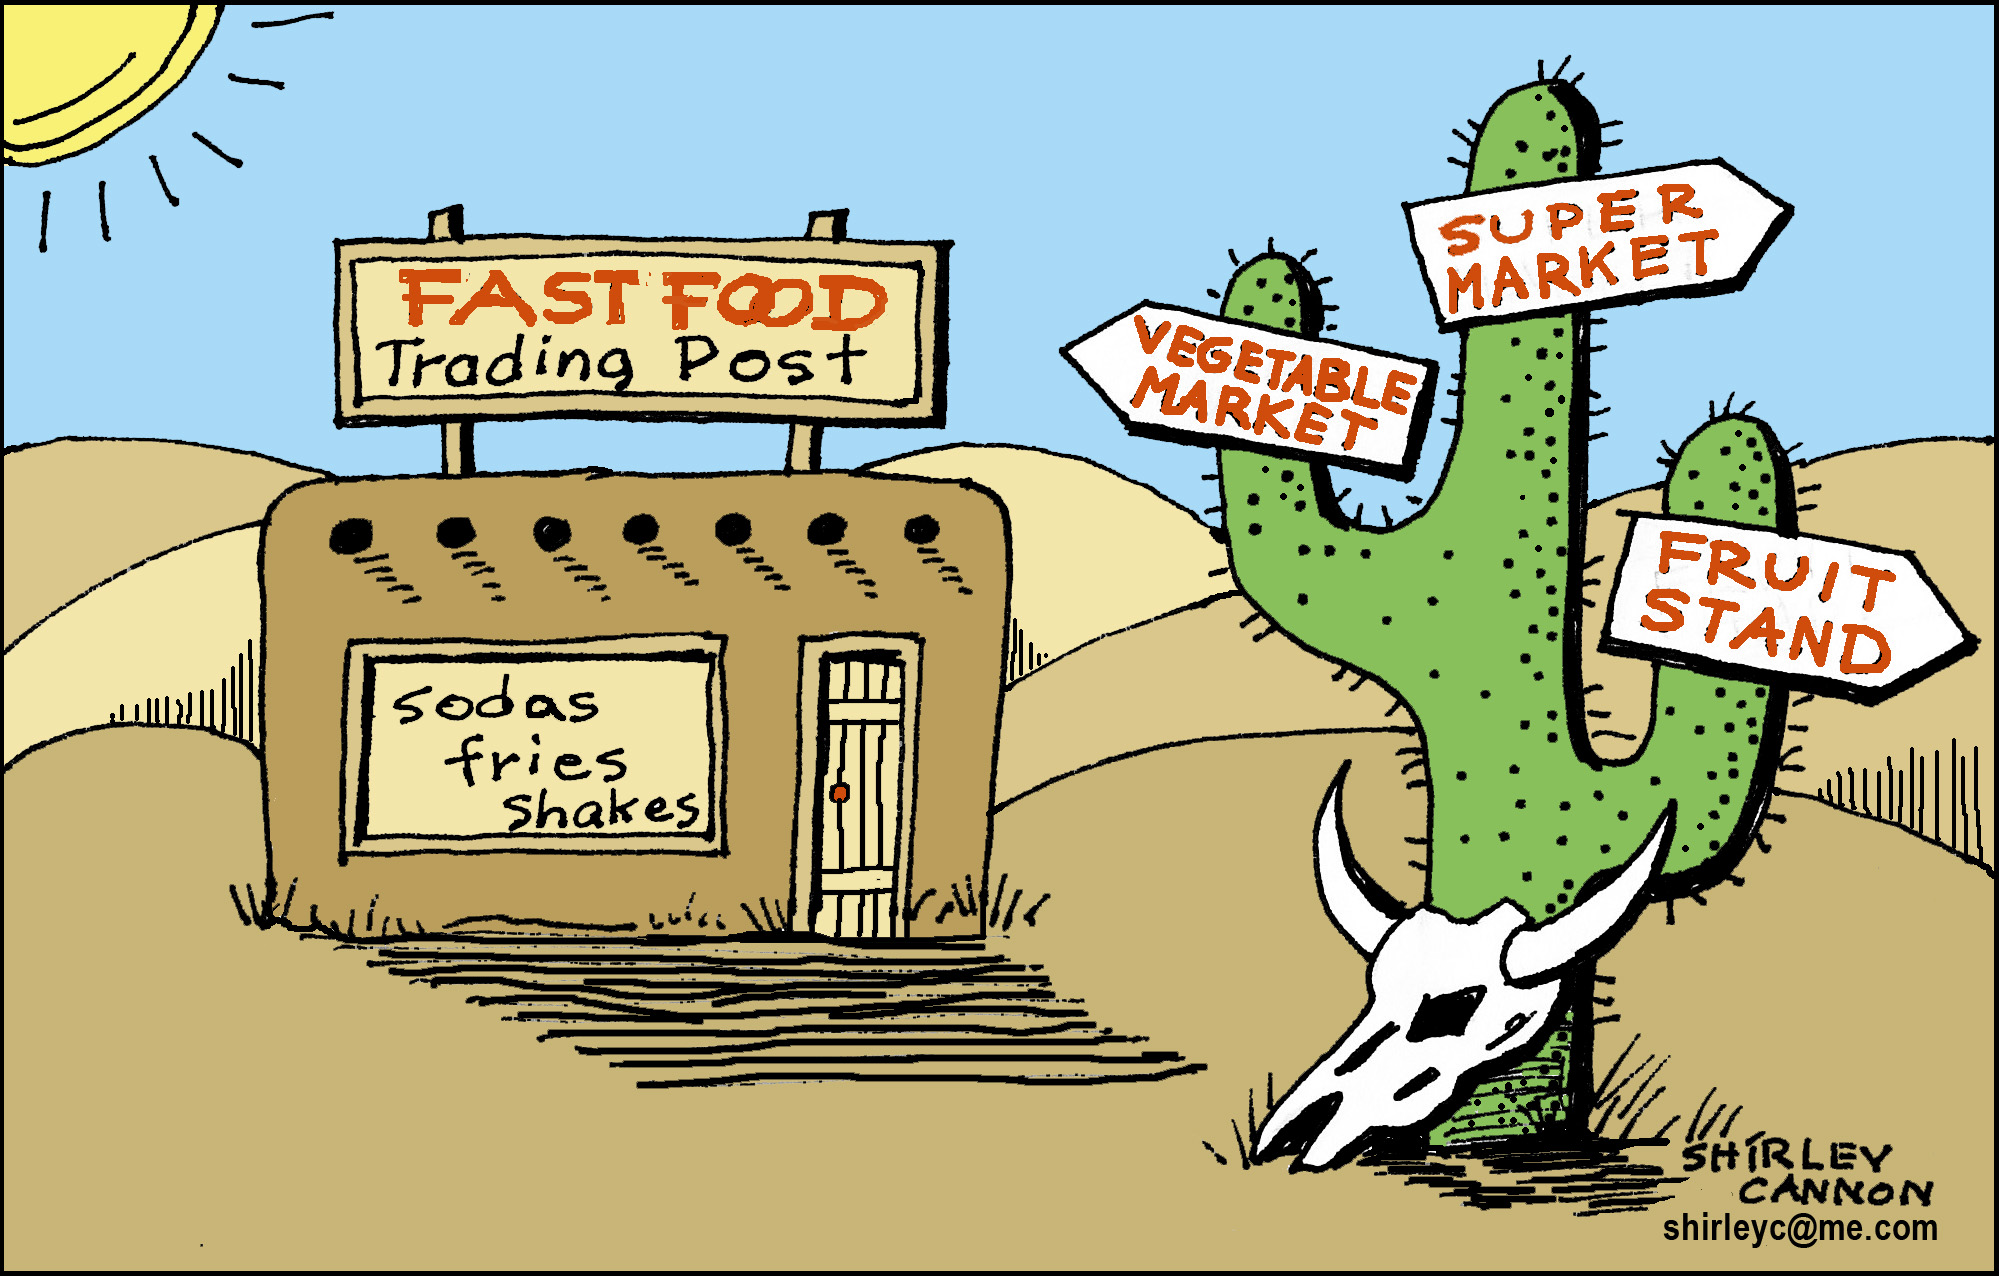 """""""That's still a thing?!"""": Food Deserts and Black America"""